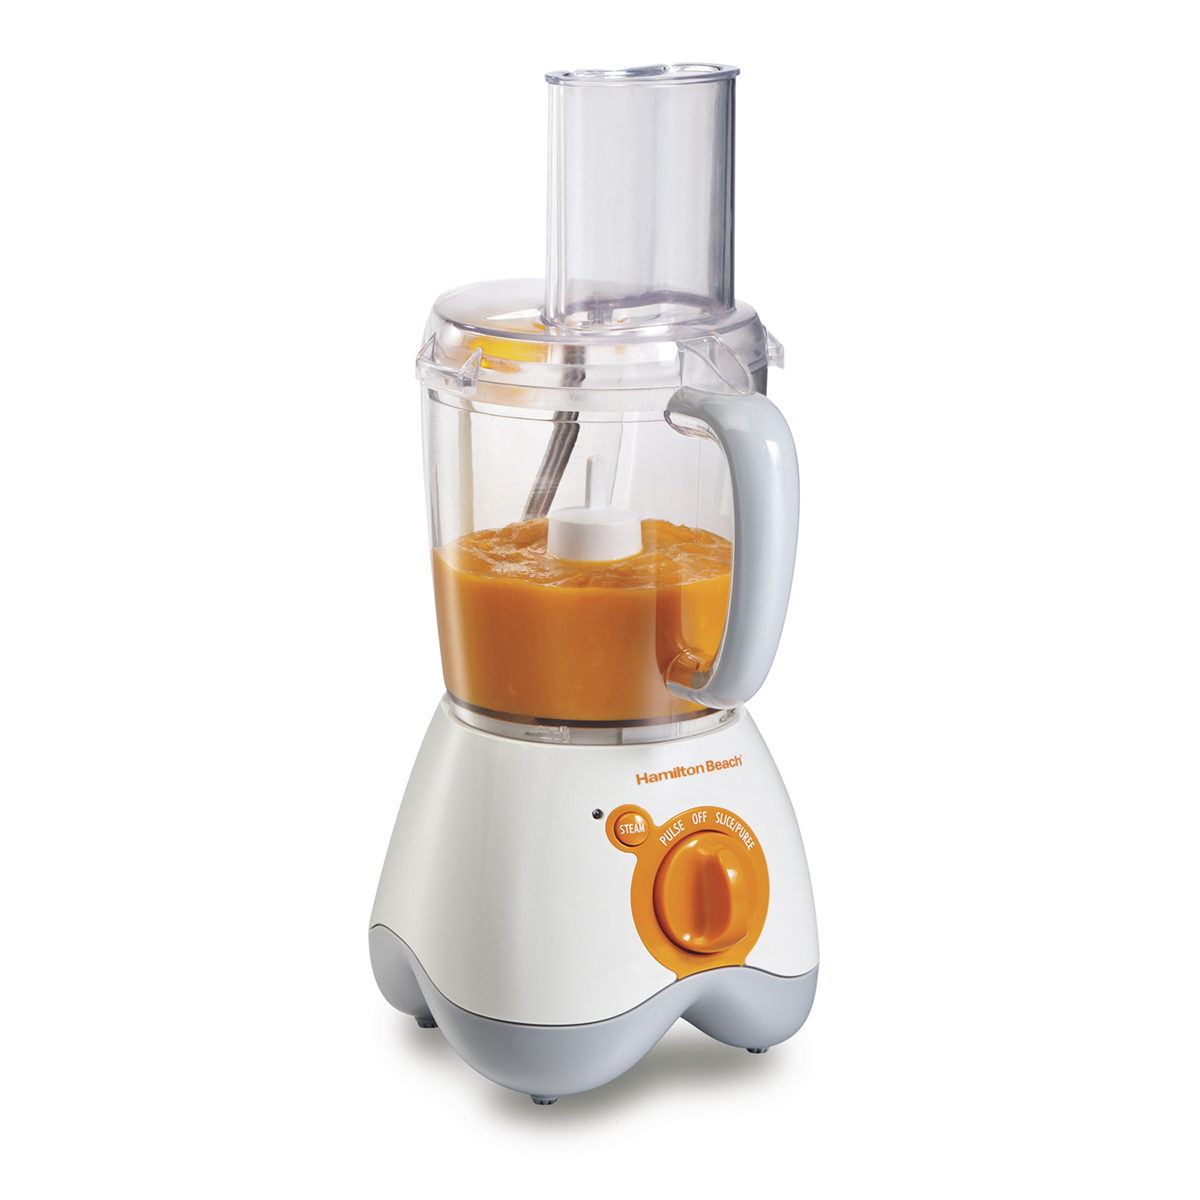 bébé All-in-One Baby Food Maker (36533)